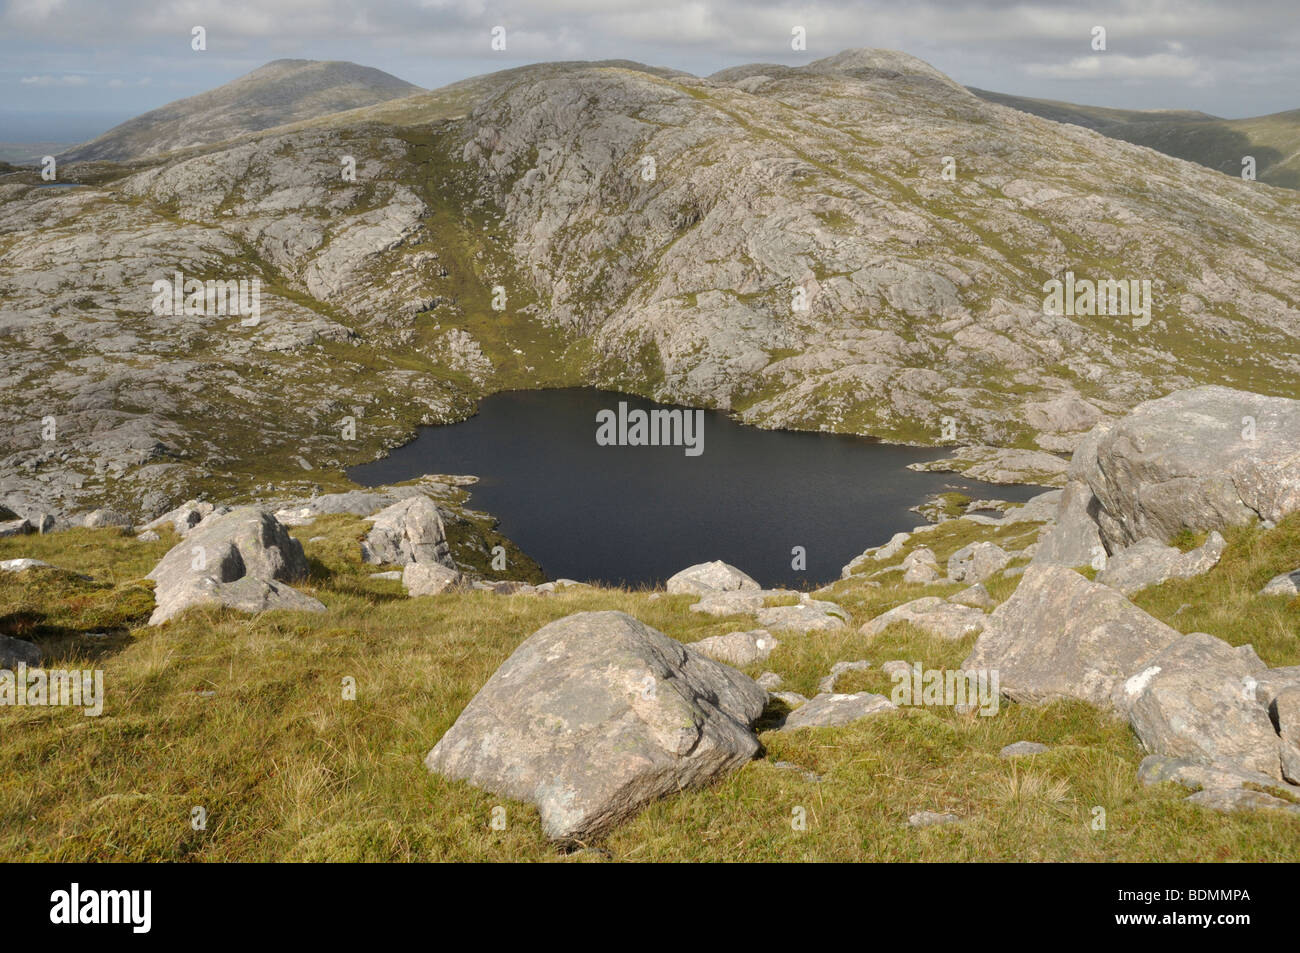 Loch Braighe Griomabhal, Isle of Lewis, Scotland - Stock Image